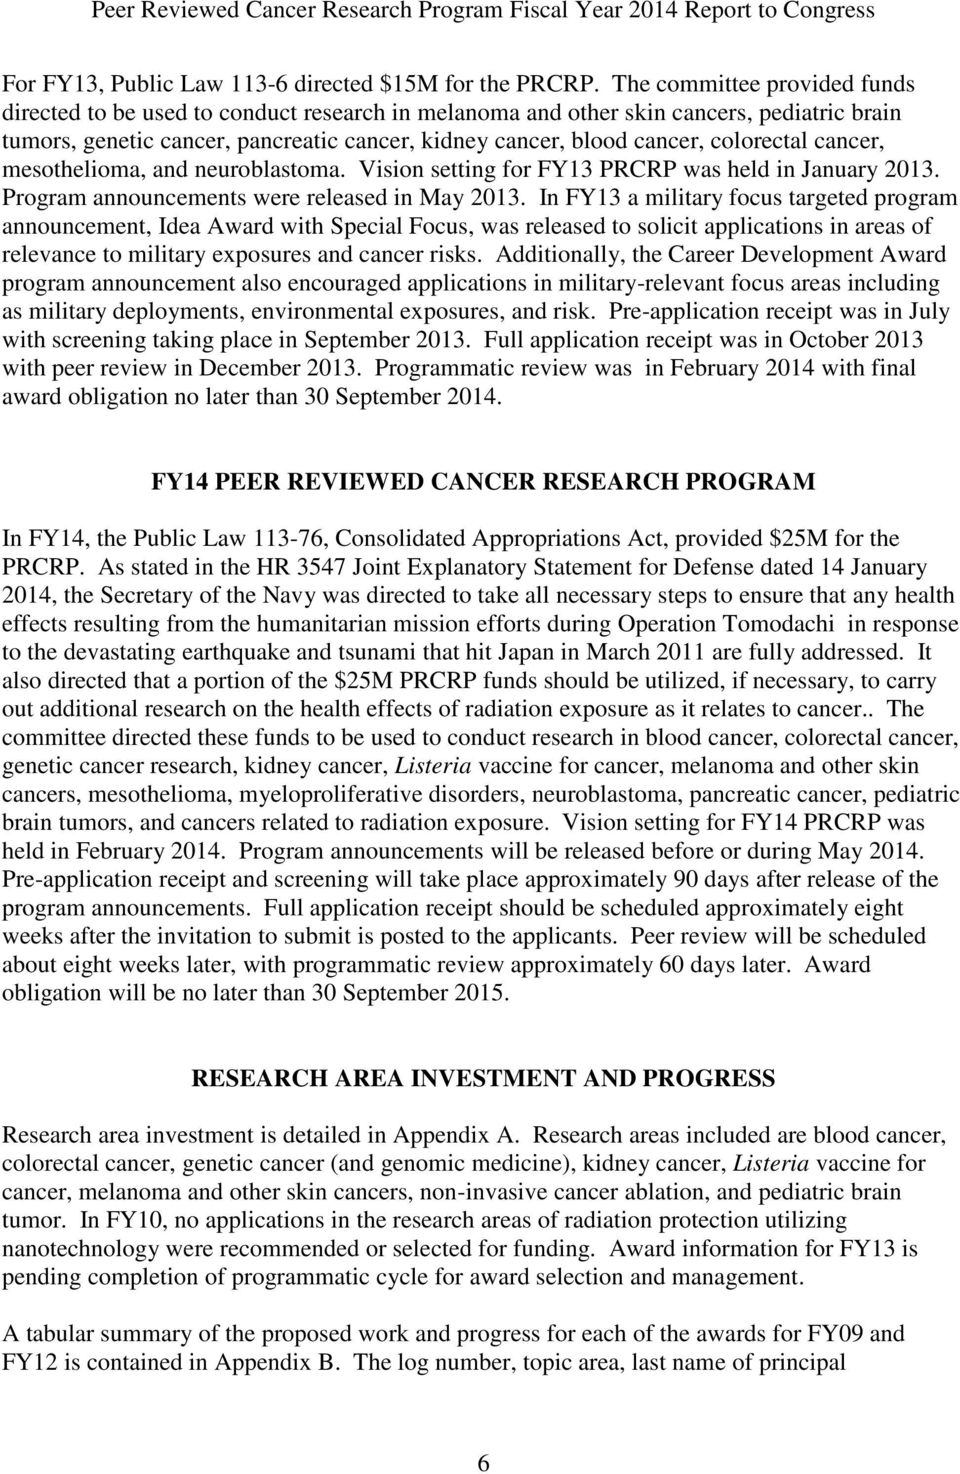 colorectal cancer, mesothelioma, and neuroblastoma. Vision setting for FY13 PRCRP was held in January 2013. Program announcements were released in May 2013.